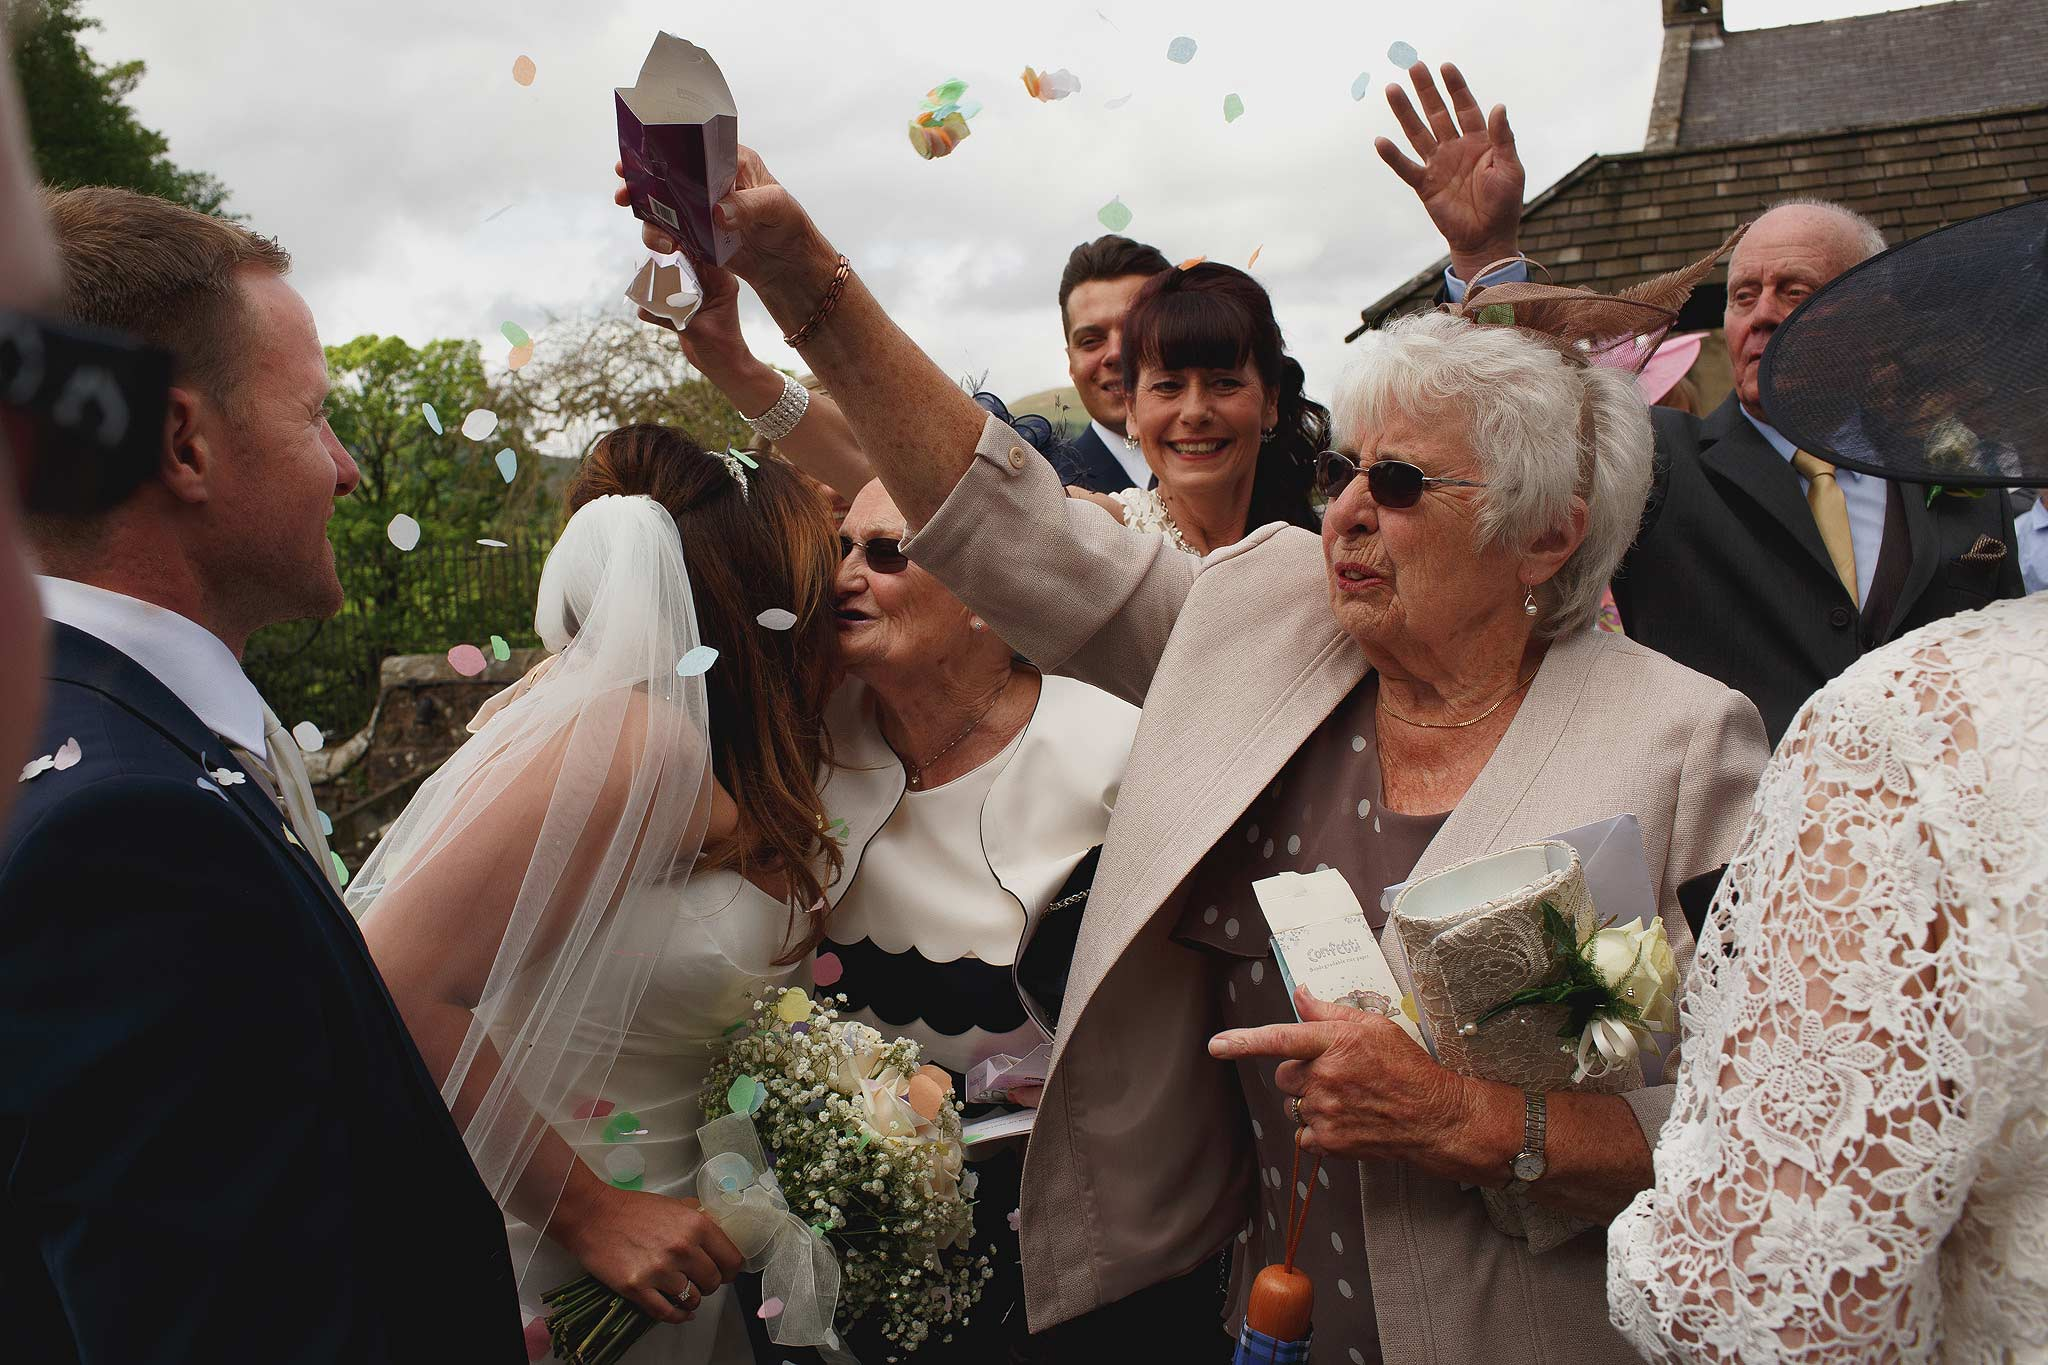 Confetti being thrown at a wedding at the inn at whitewell